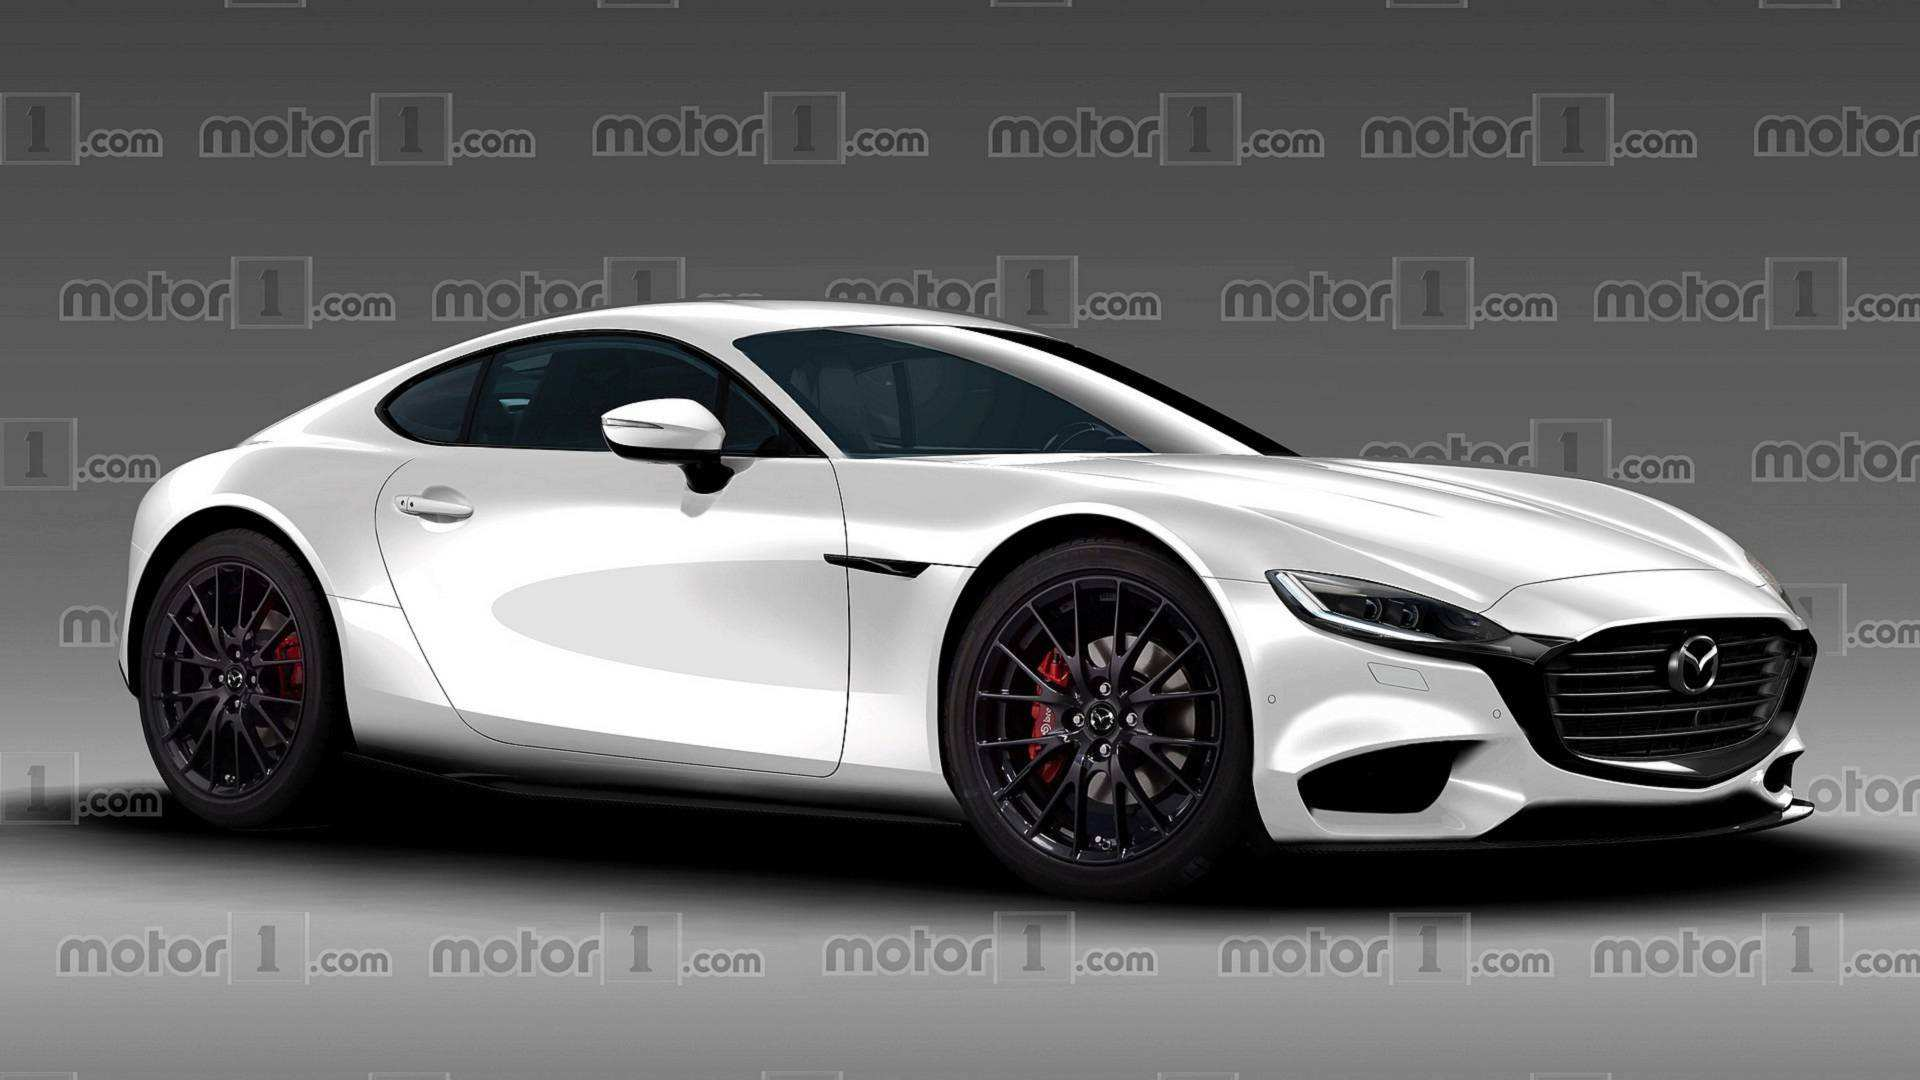 42 All New Mazda Wankel 2020 Spesification